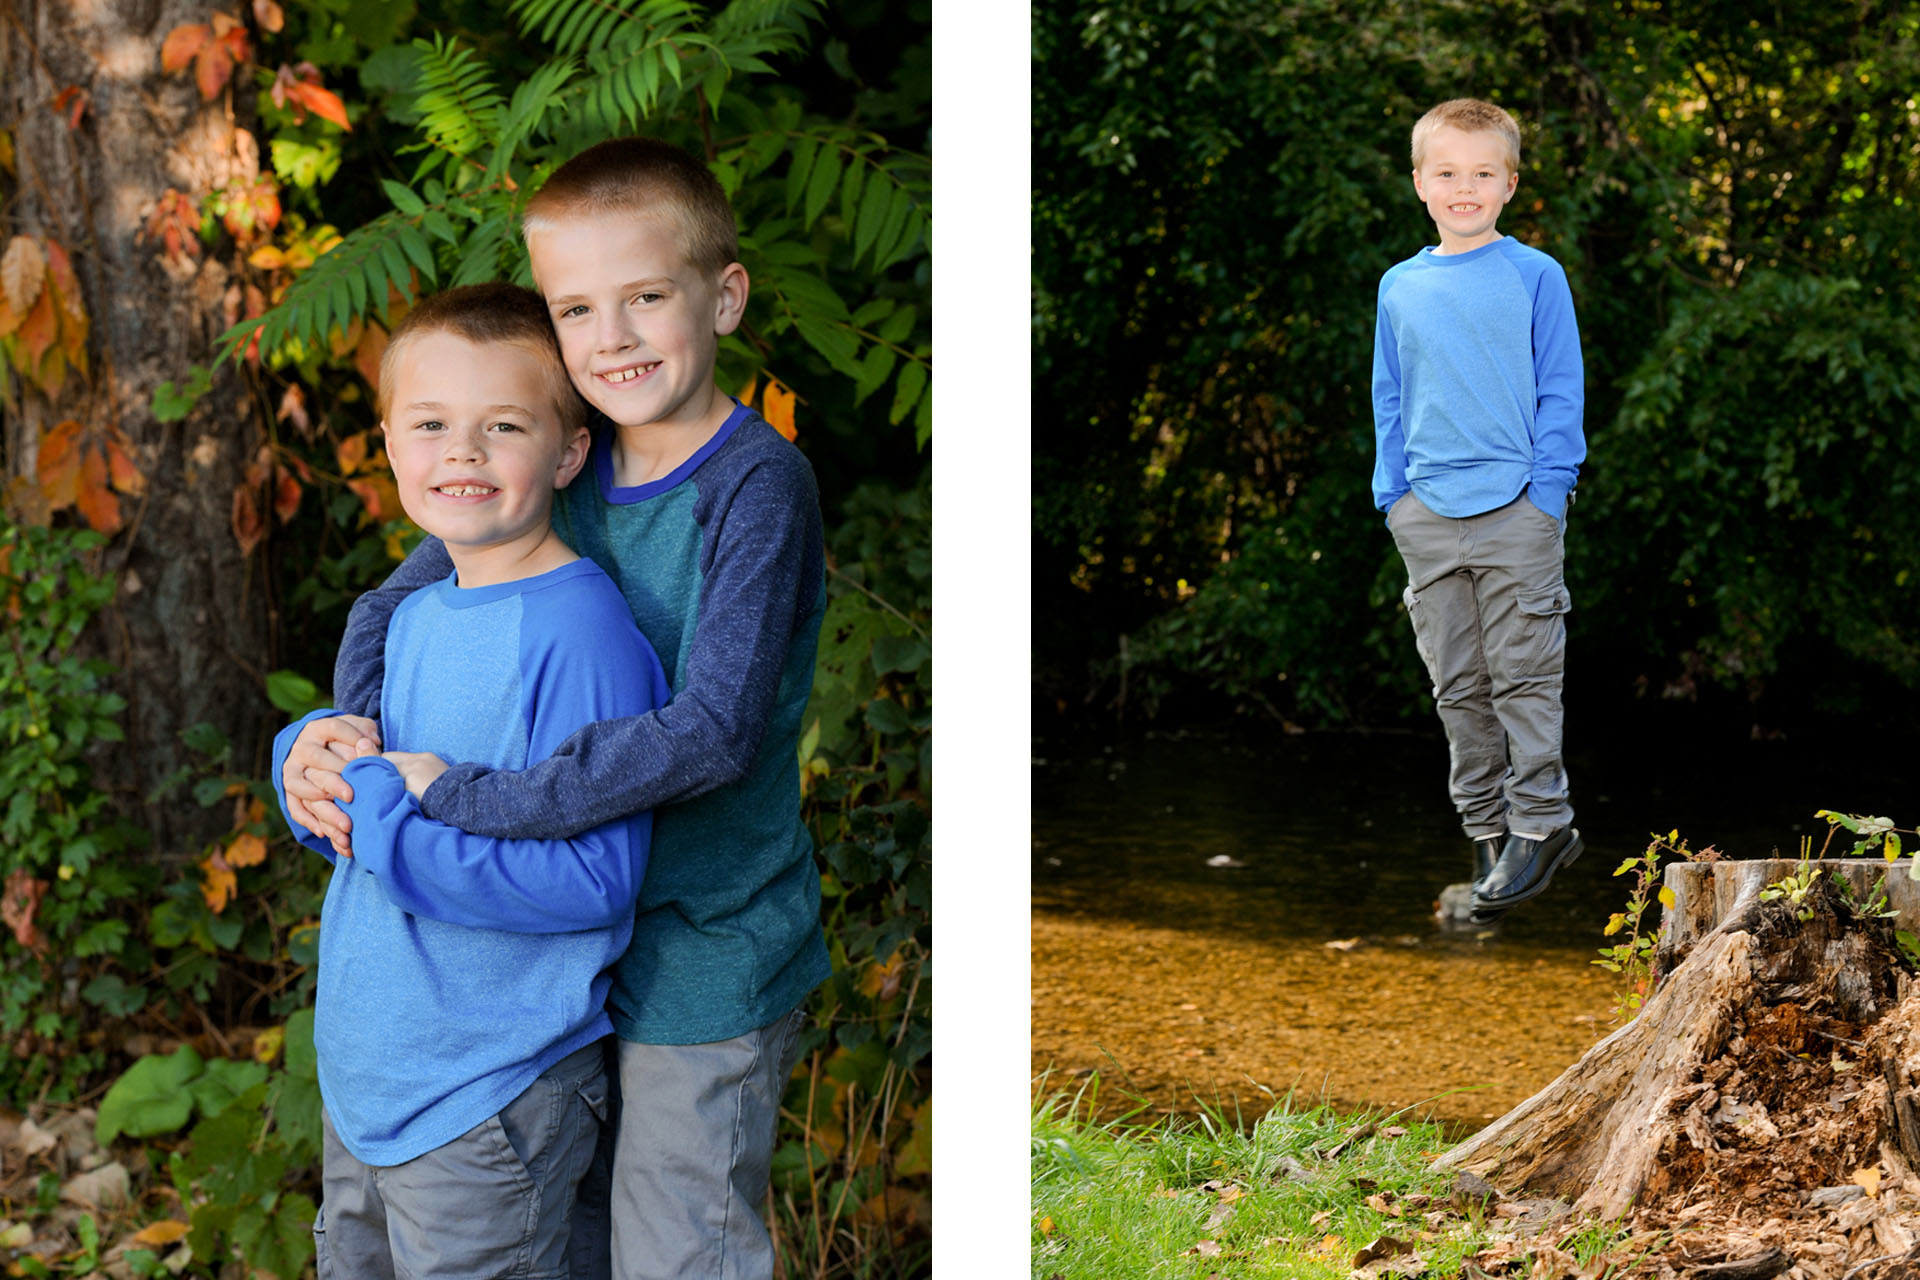 Best Detroit children photographer photographs two adorable siblings who LOVE to hug each other along with a wacky candid photo of one of the boys jumping off a log at a park in metro Detroit, Michigan.